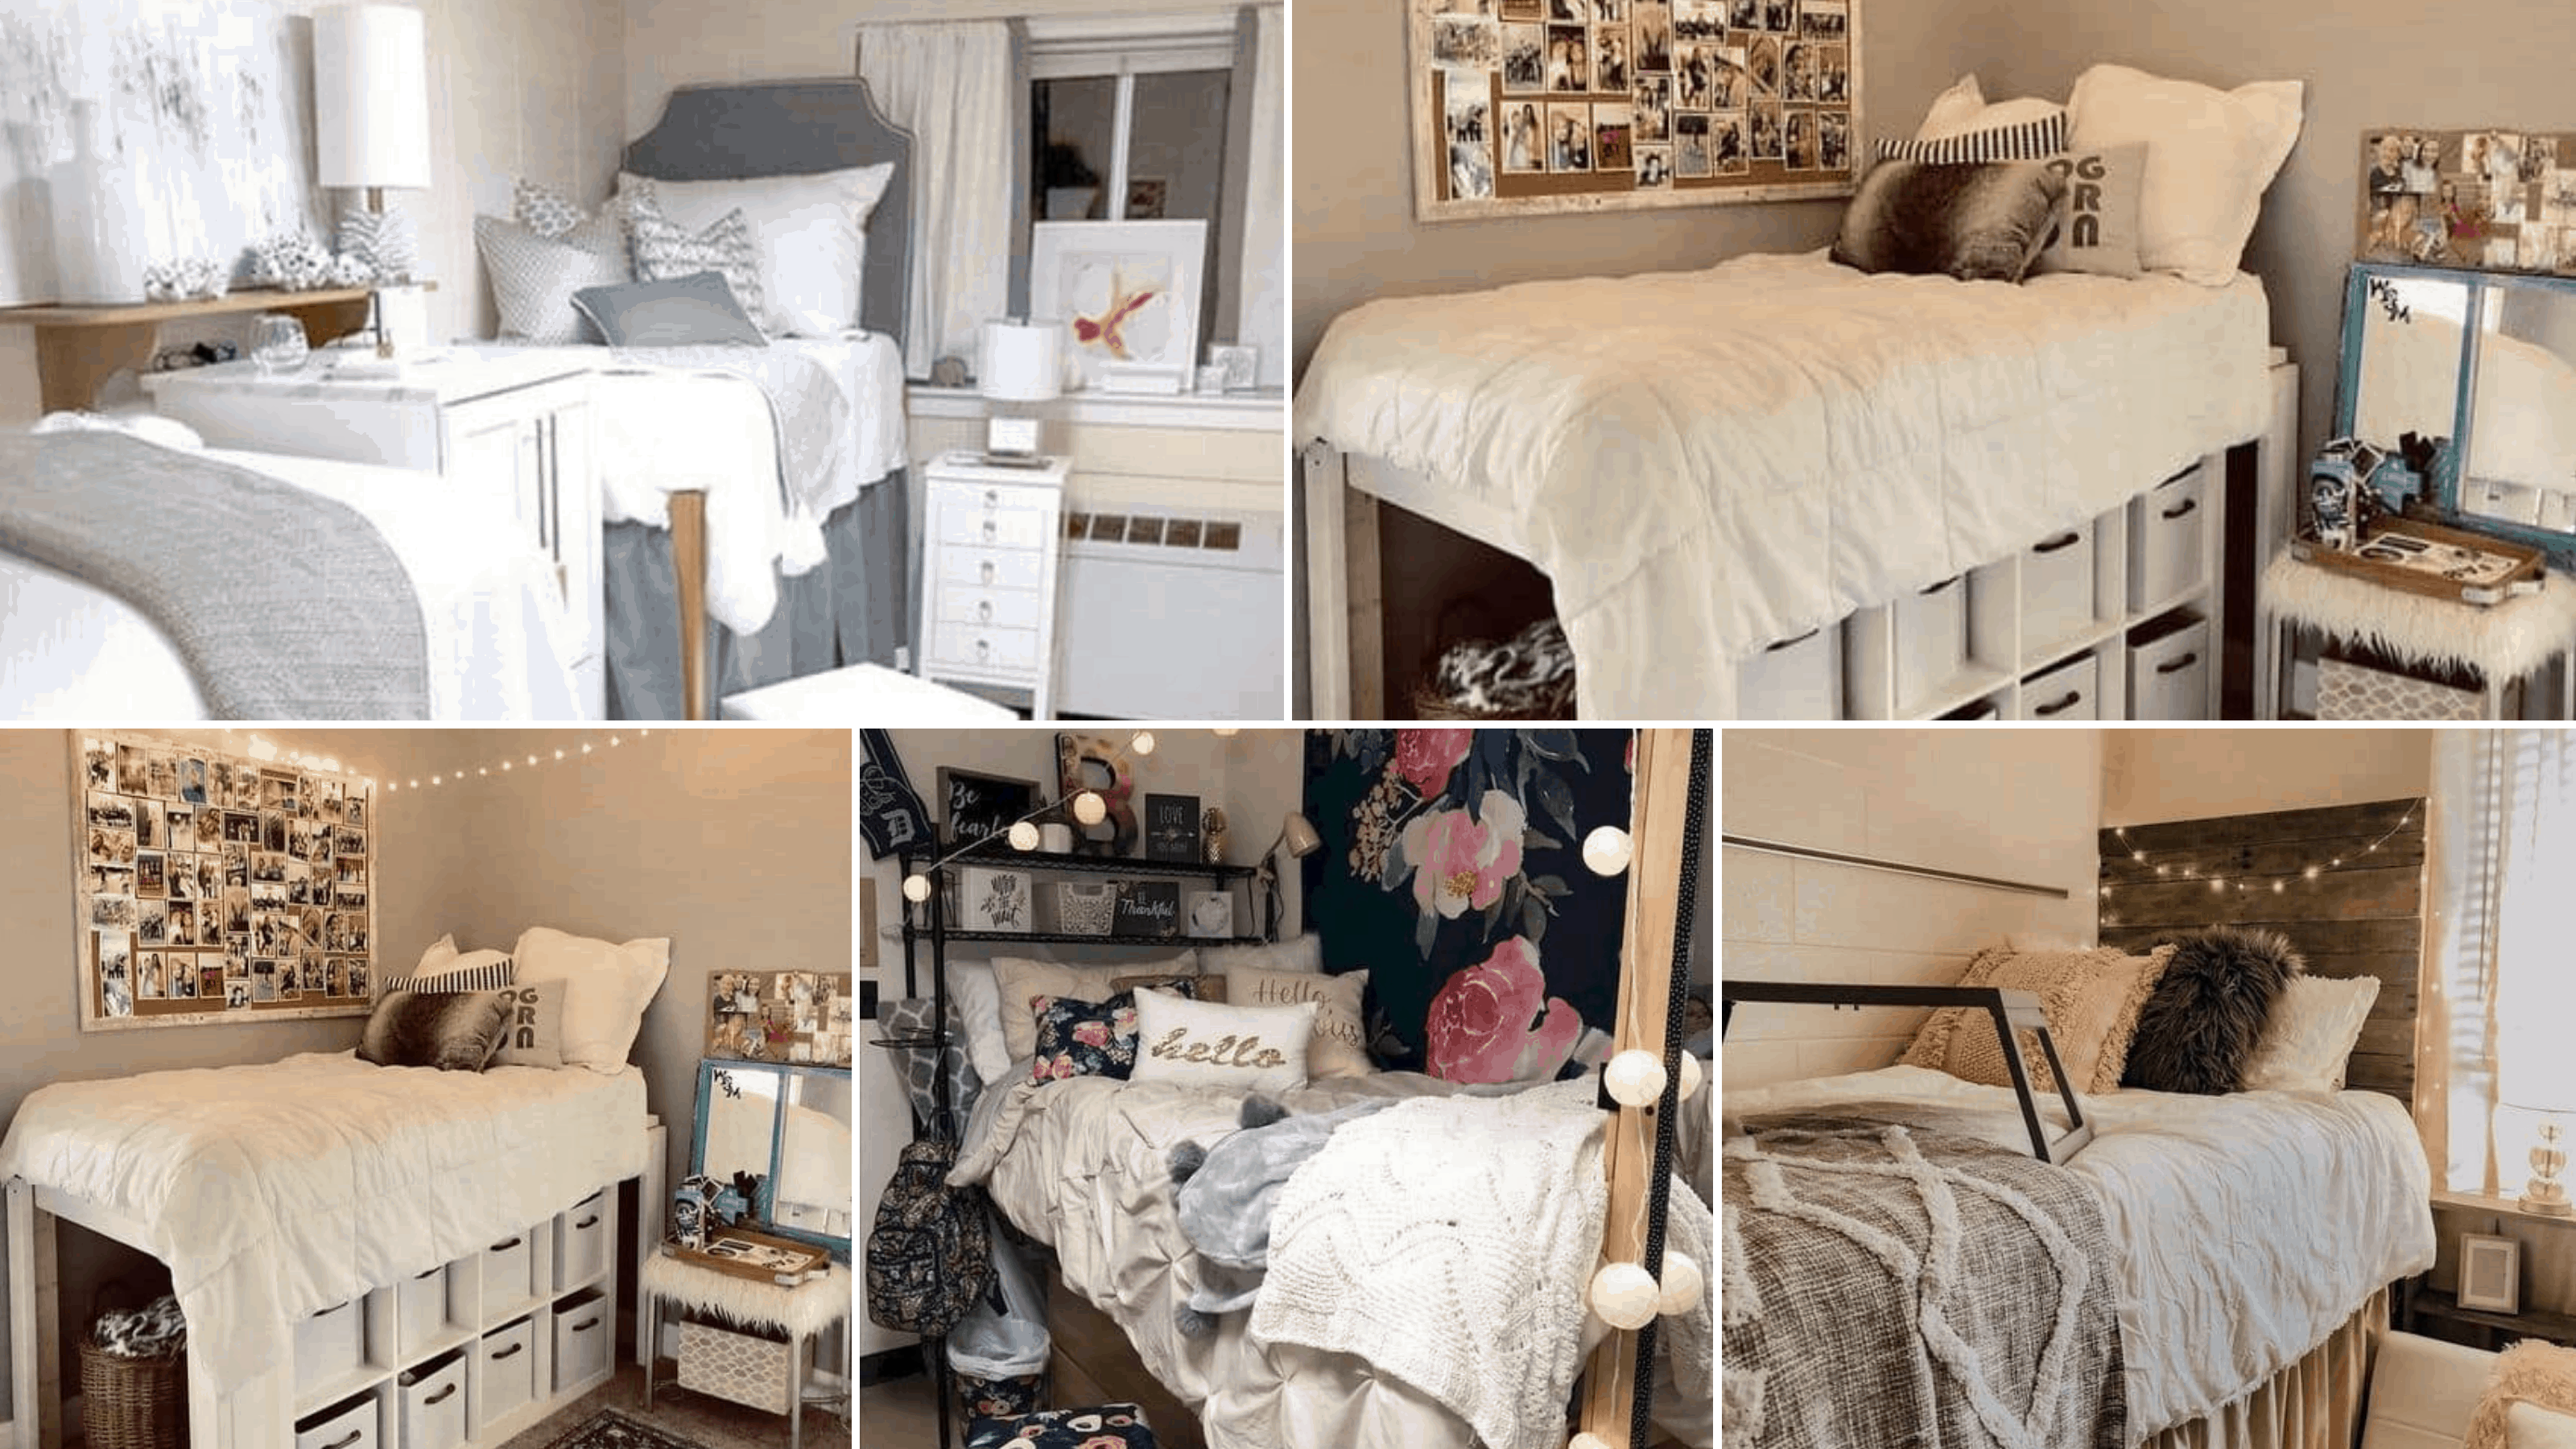 26 Insanely Cute Dorm Room Ideas for Girls To Copy This Year - By